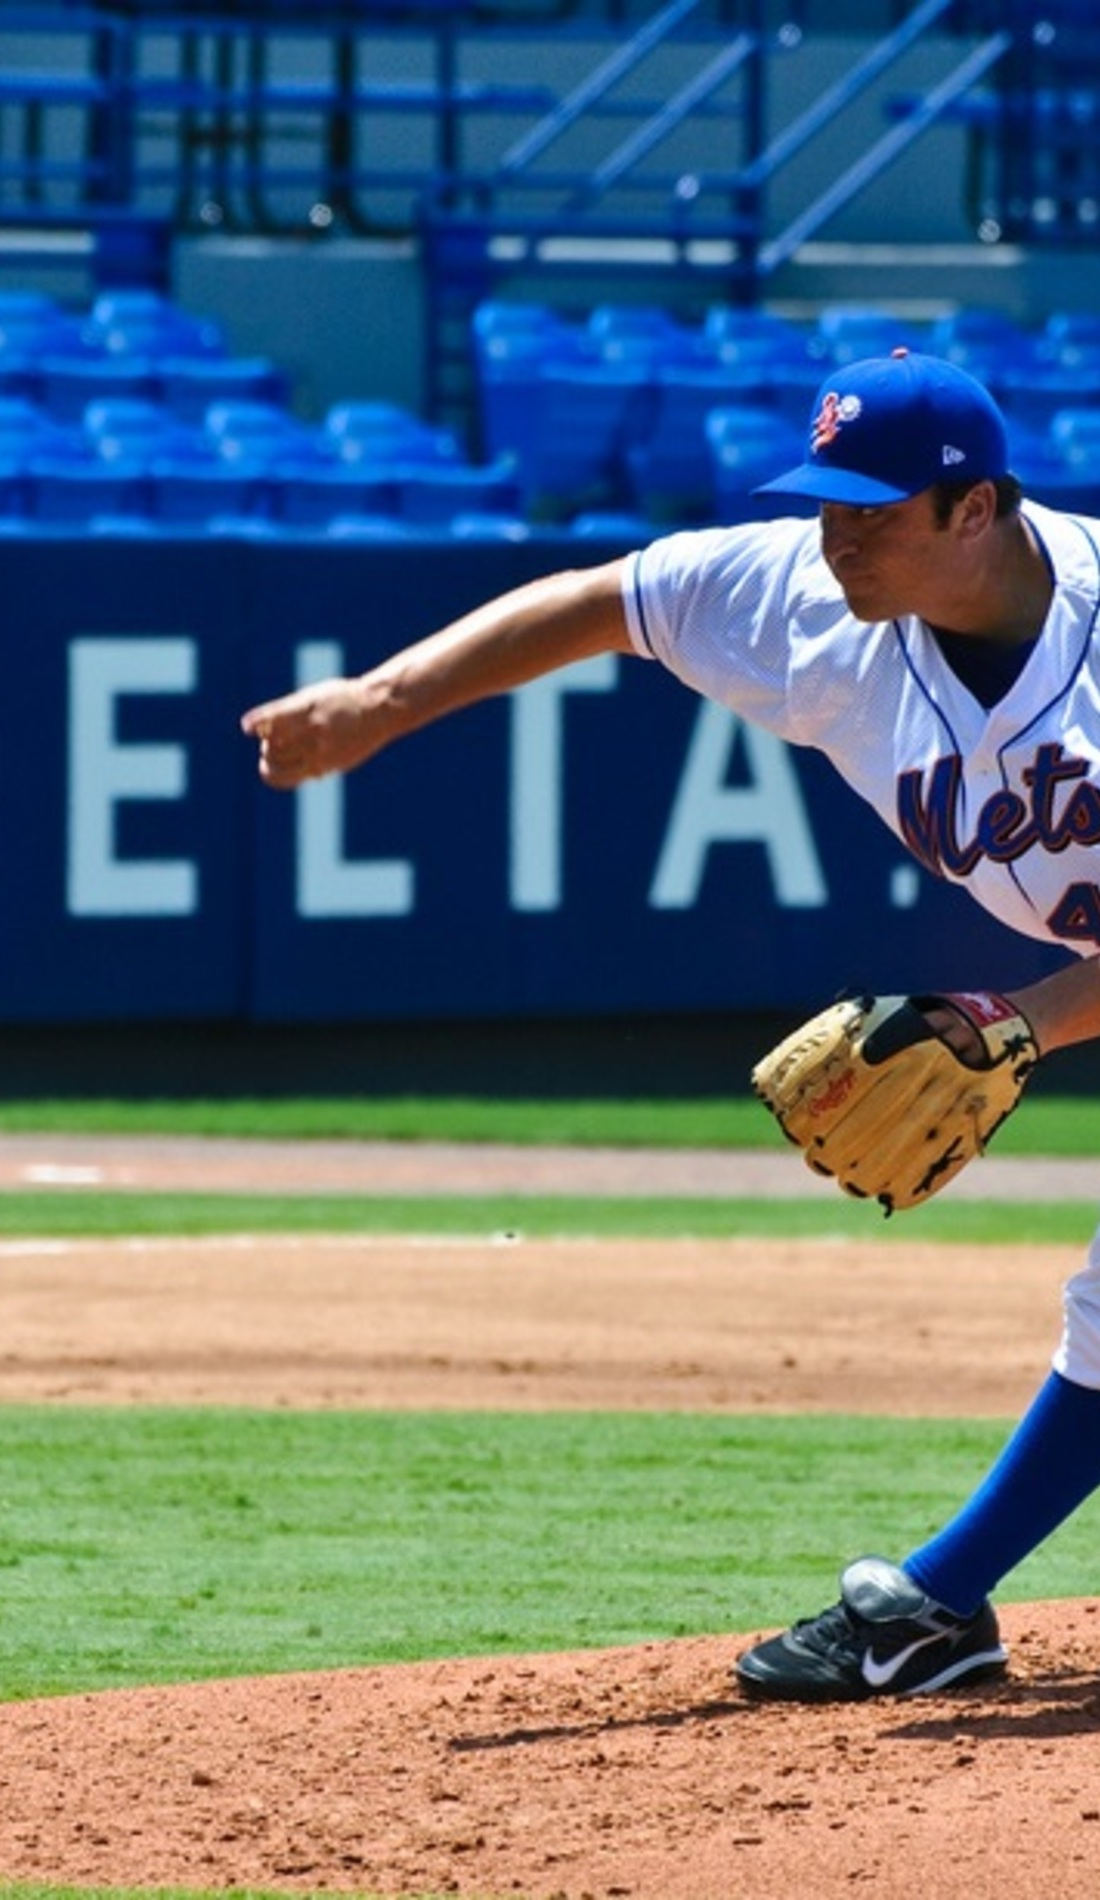 A St. Lucie Mets live event